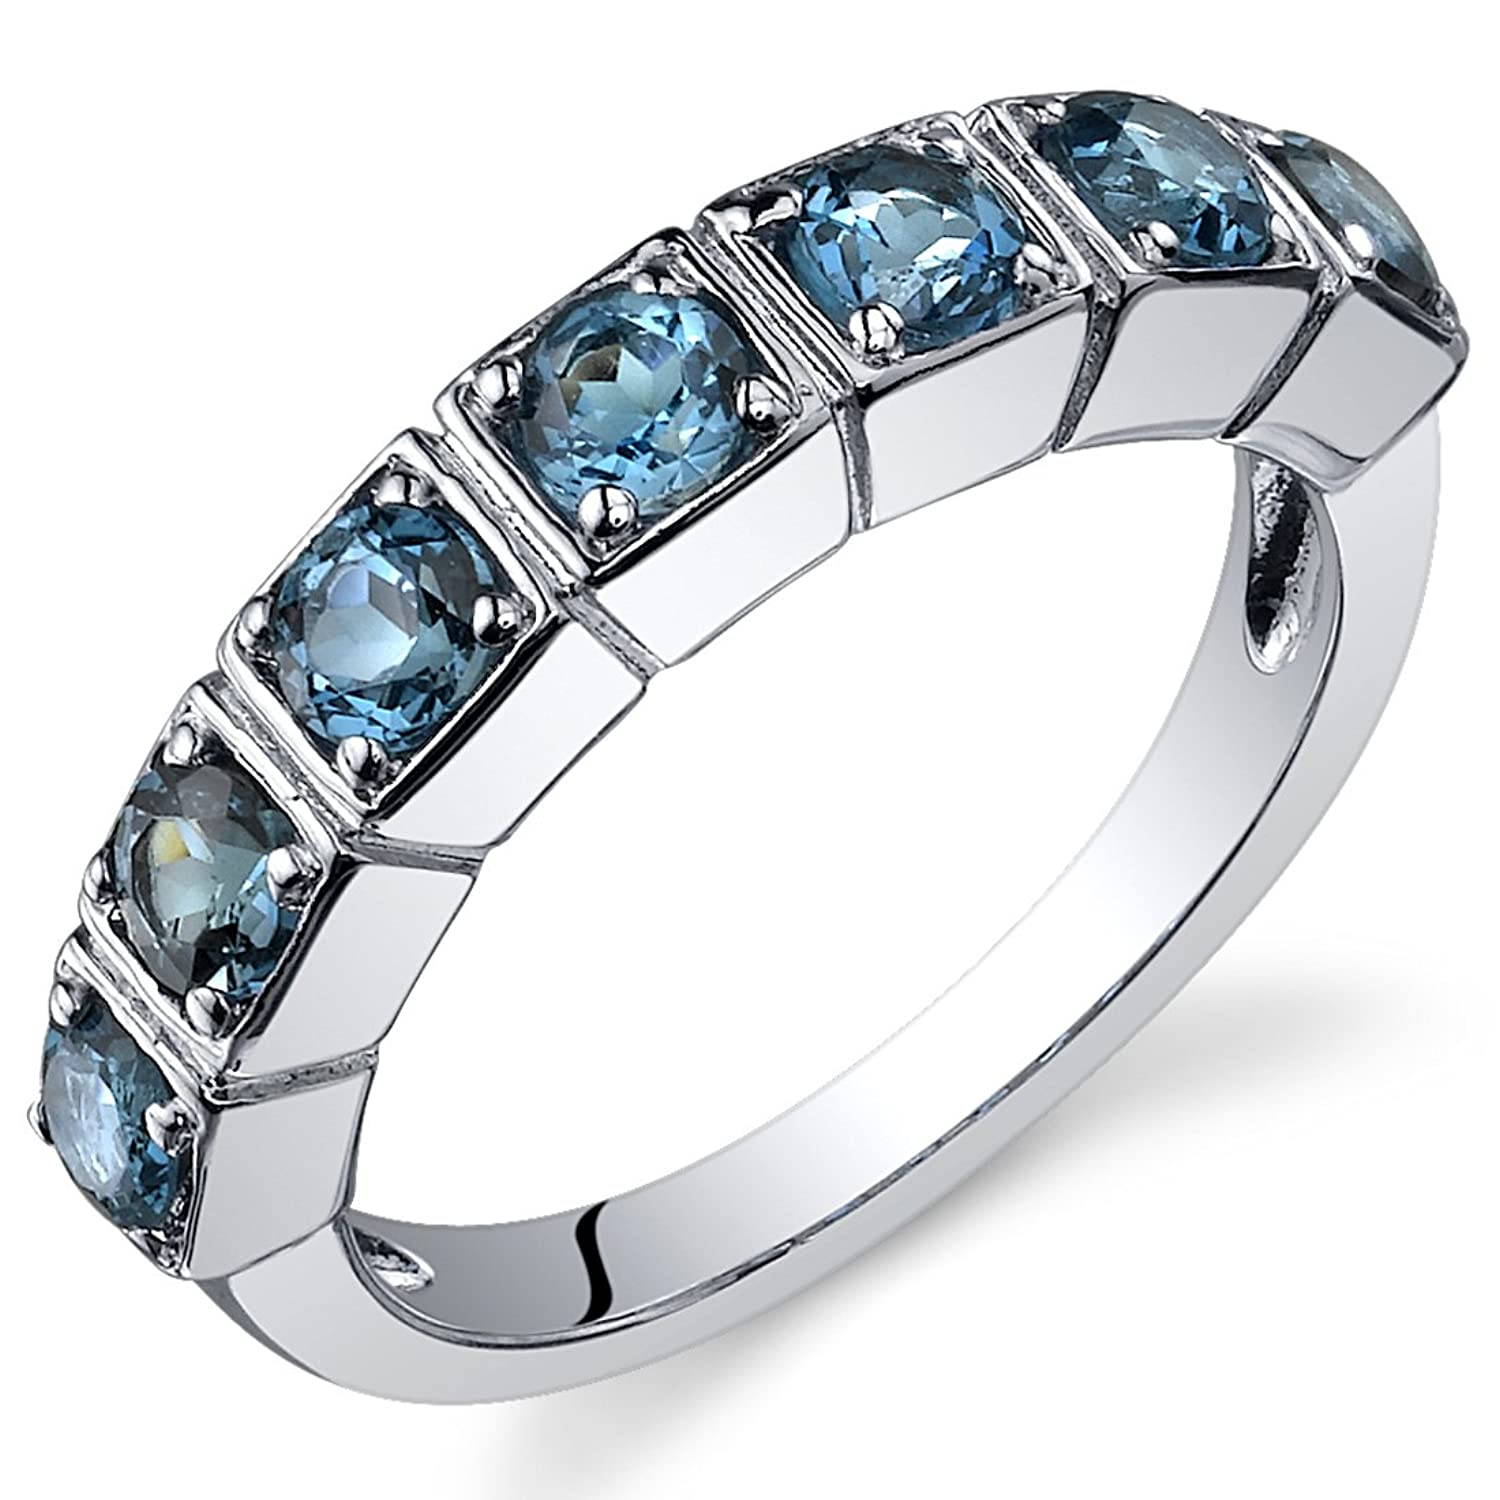 portal aquamarine information gemstones the blue healing stone ring powers mystical jewellery rings and sapphire of